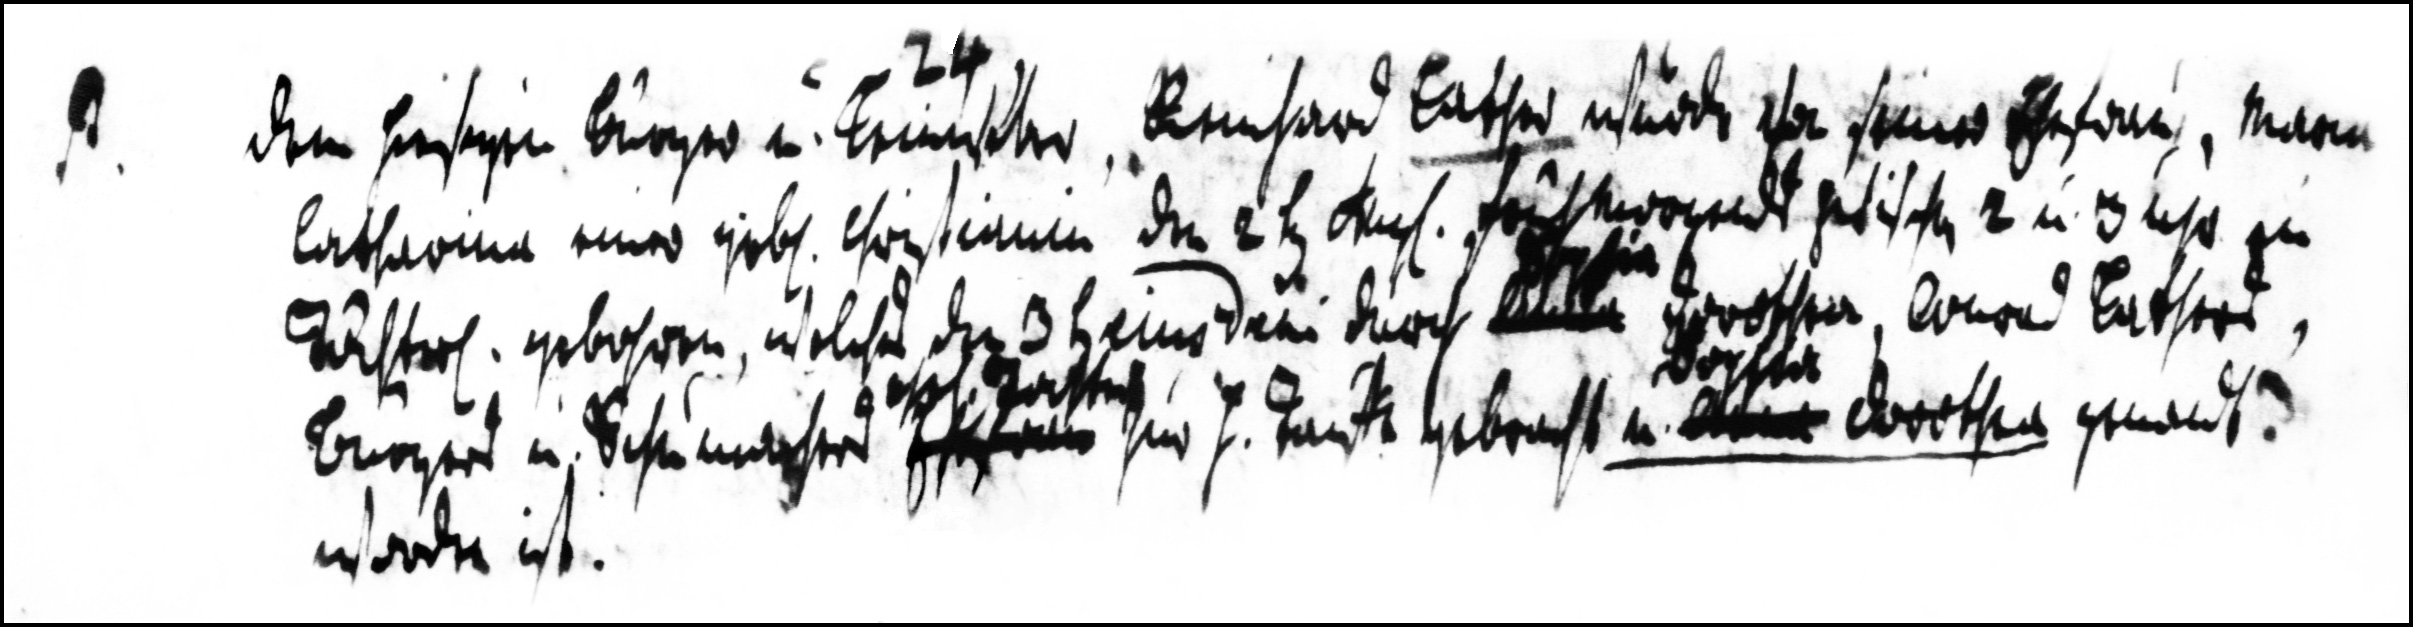 The Birth and Baptismal Record of Sophia Dorothea Lather - 1784